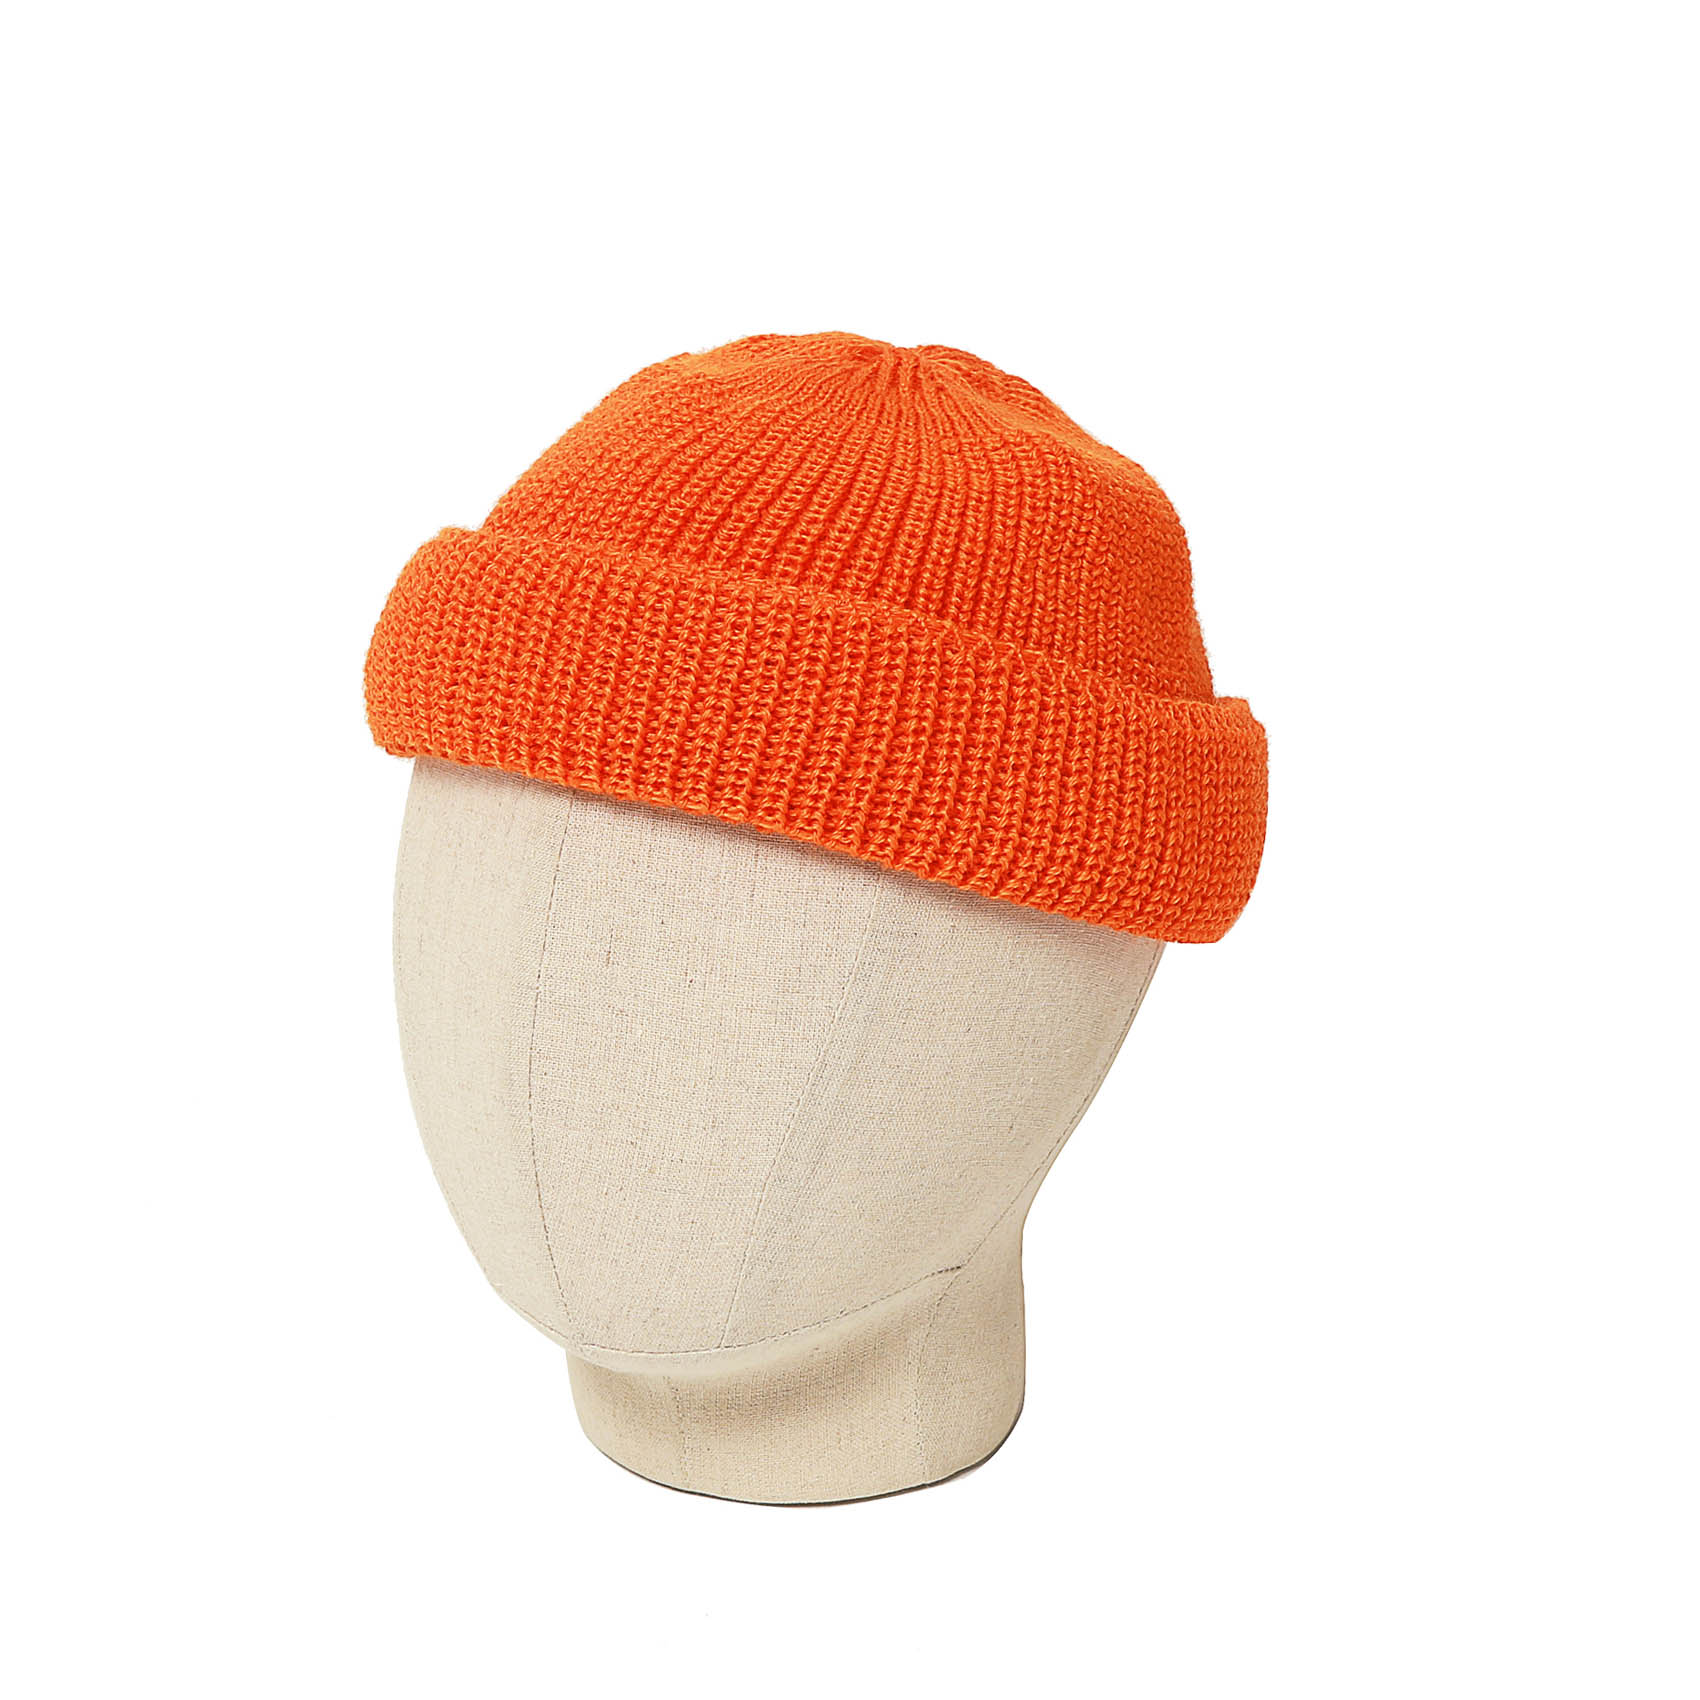 DECK HAT - ORANGE